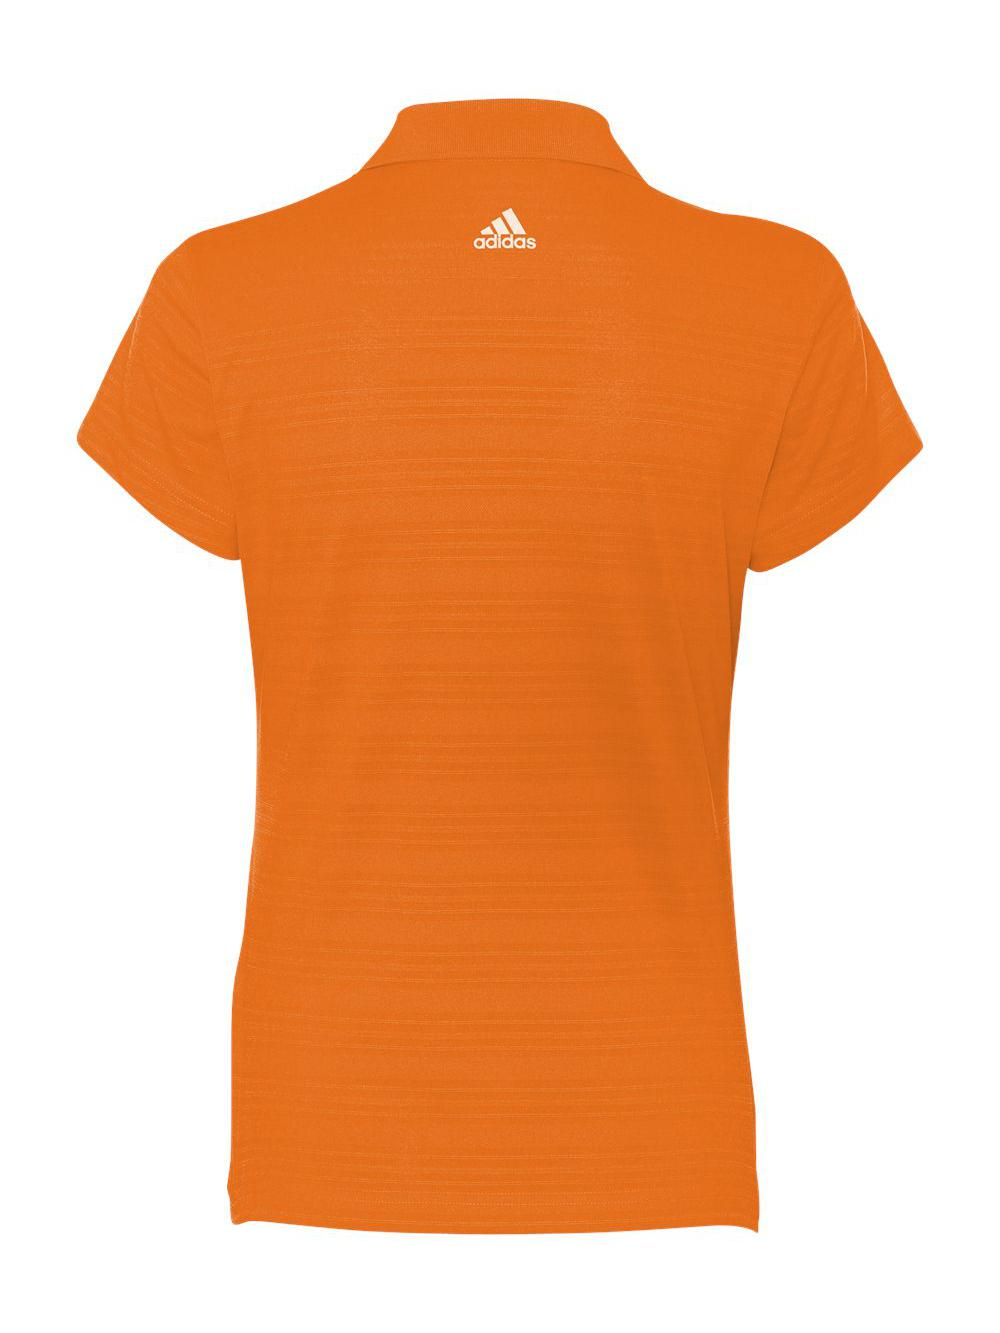 Adidas-Golf-Women-039-s-ClimaLite-Textured-Short-Sleeve-Polo-A162 thumbnail 4